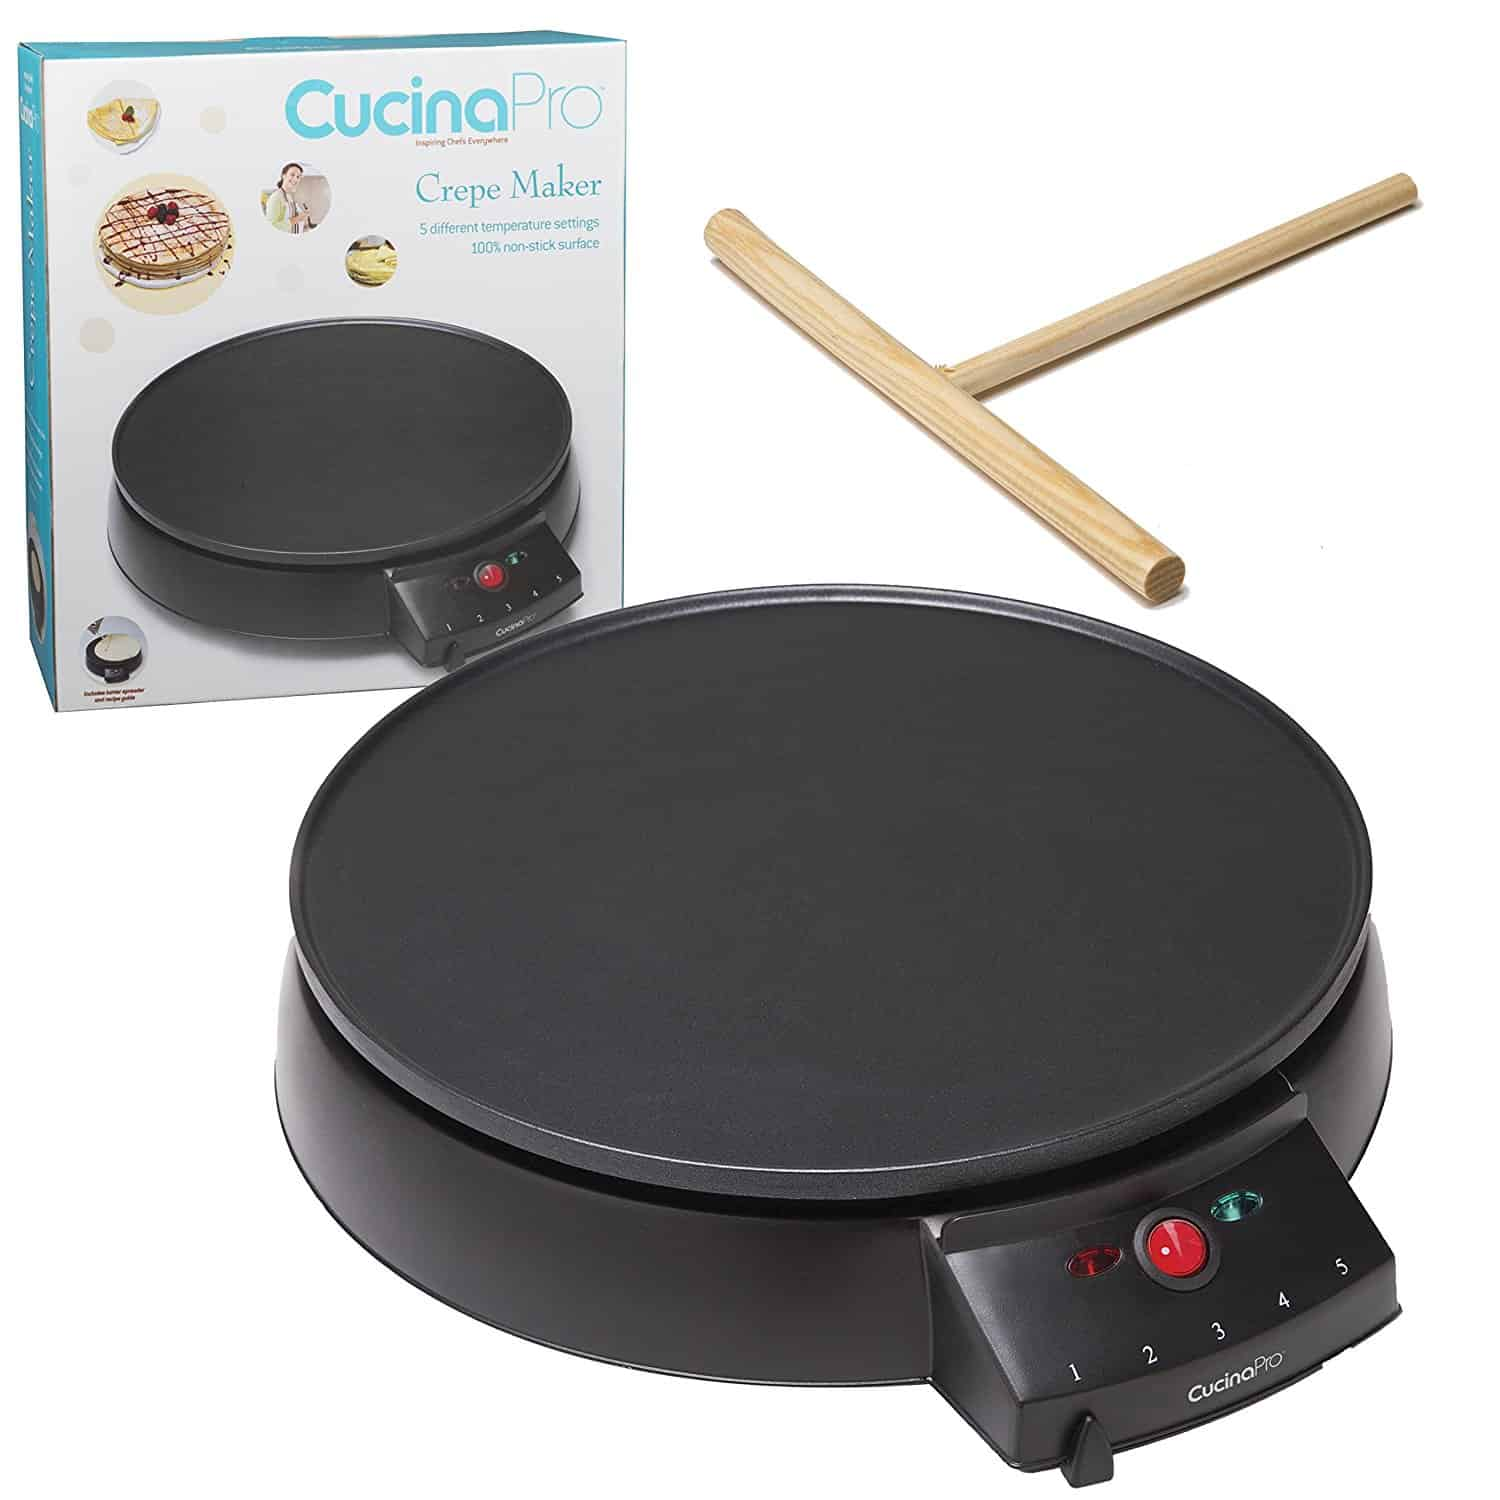 CucinaPro's Electric Griddle and Crepe Maker